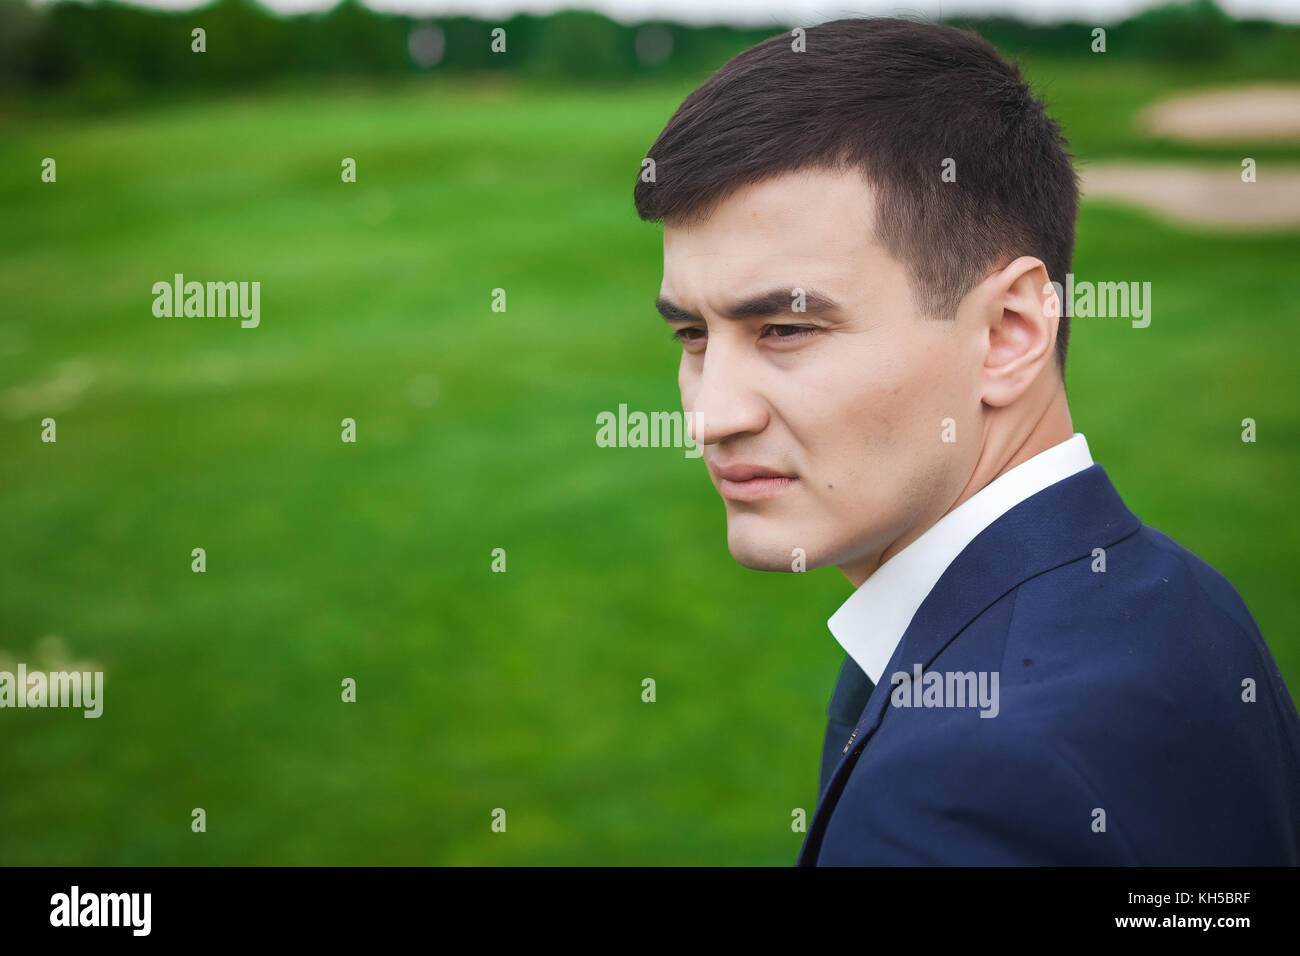 Portrait of thoughtfull groom on the green golf field - Stock Image